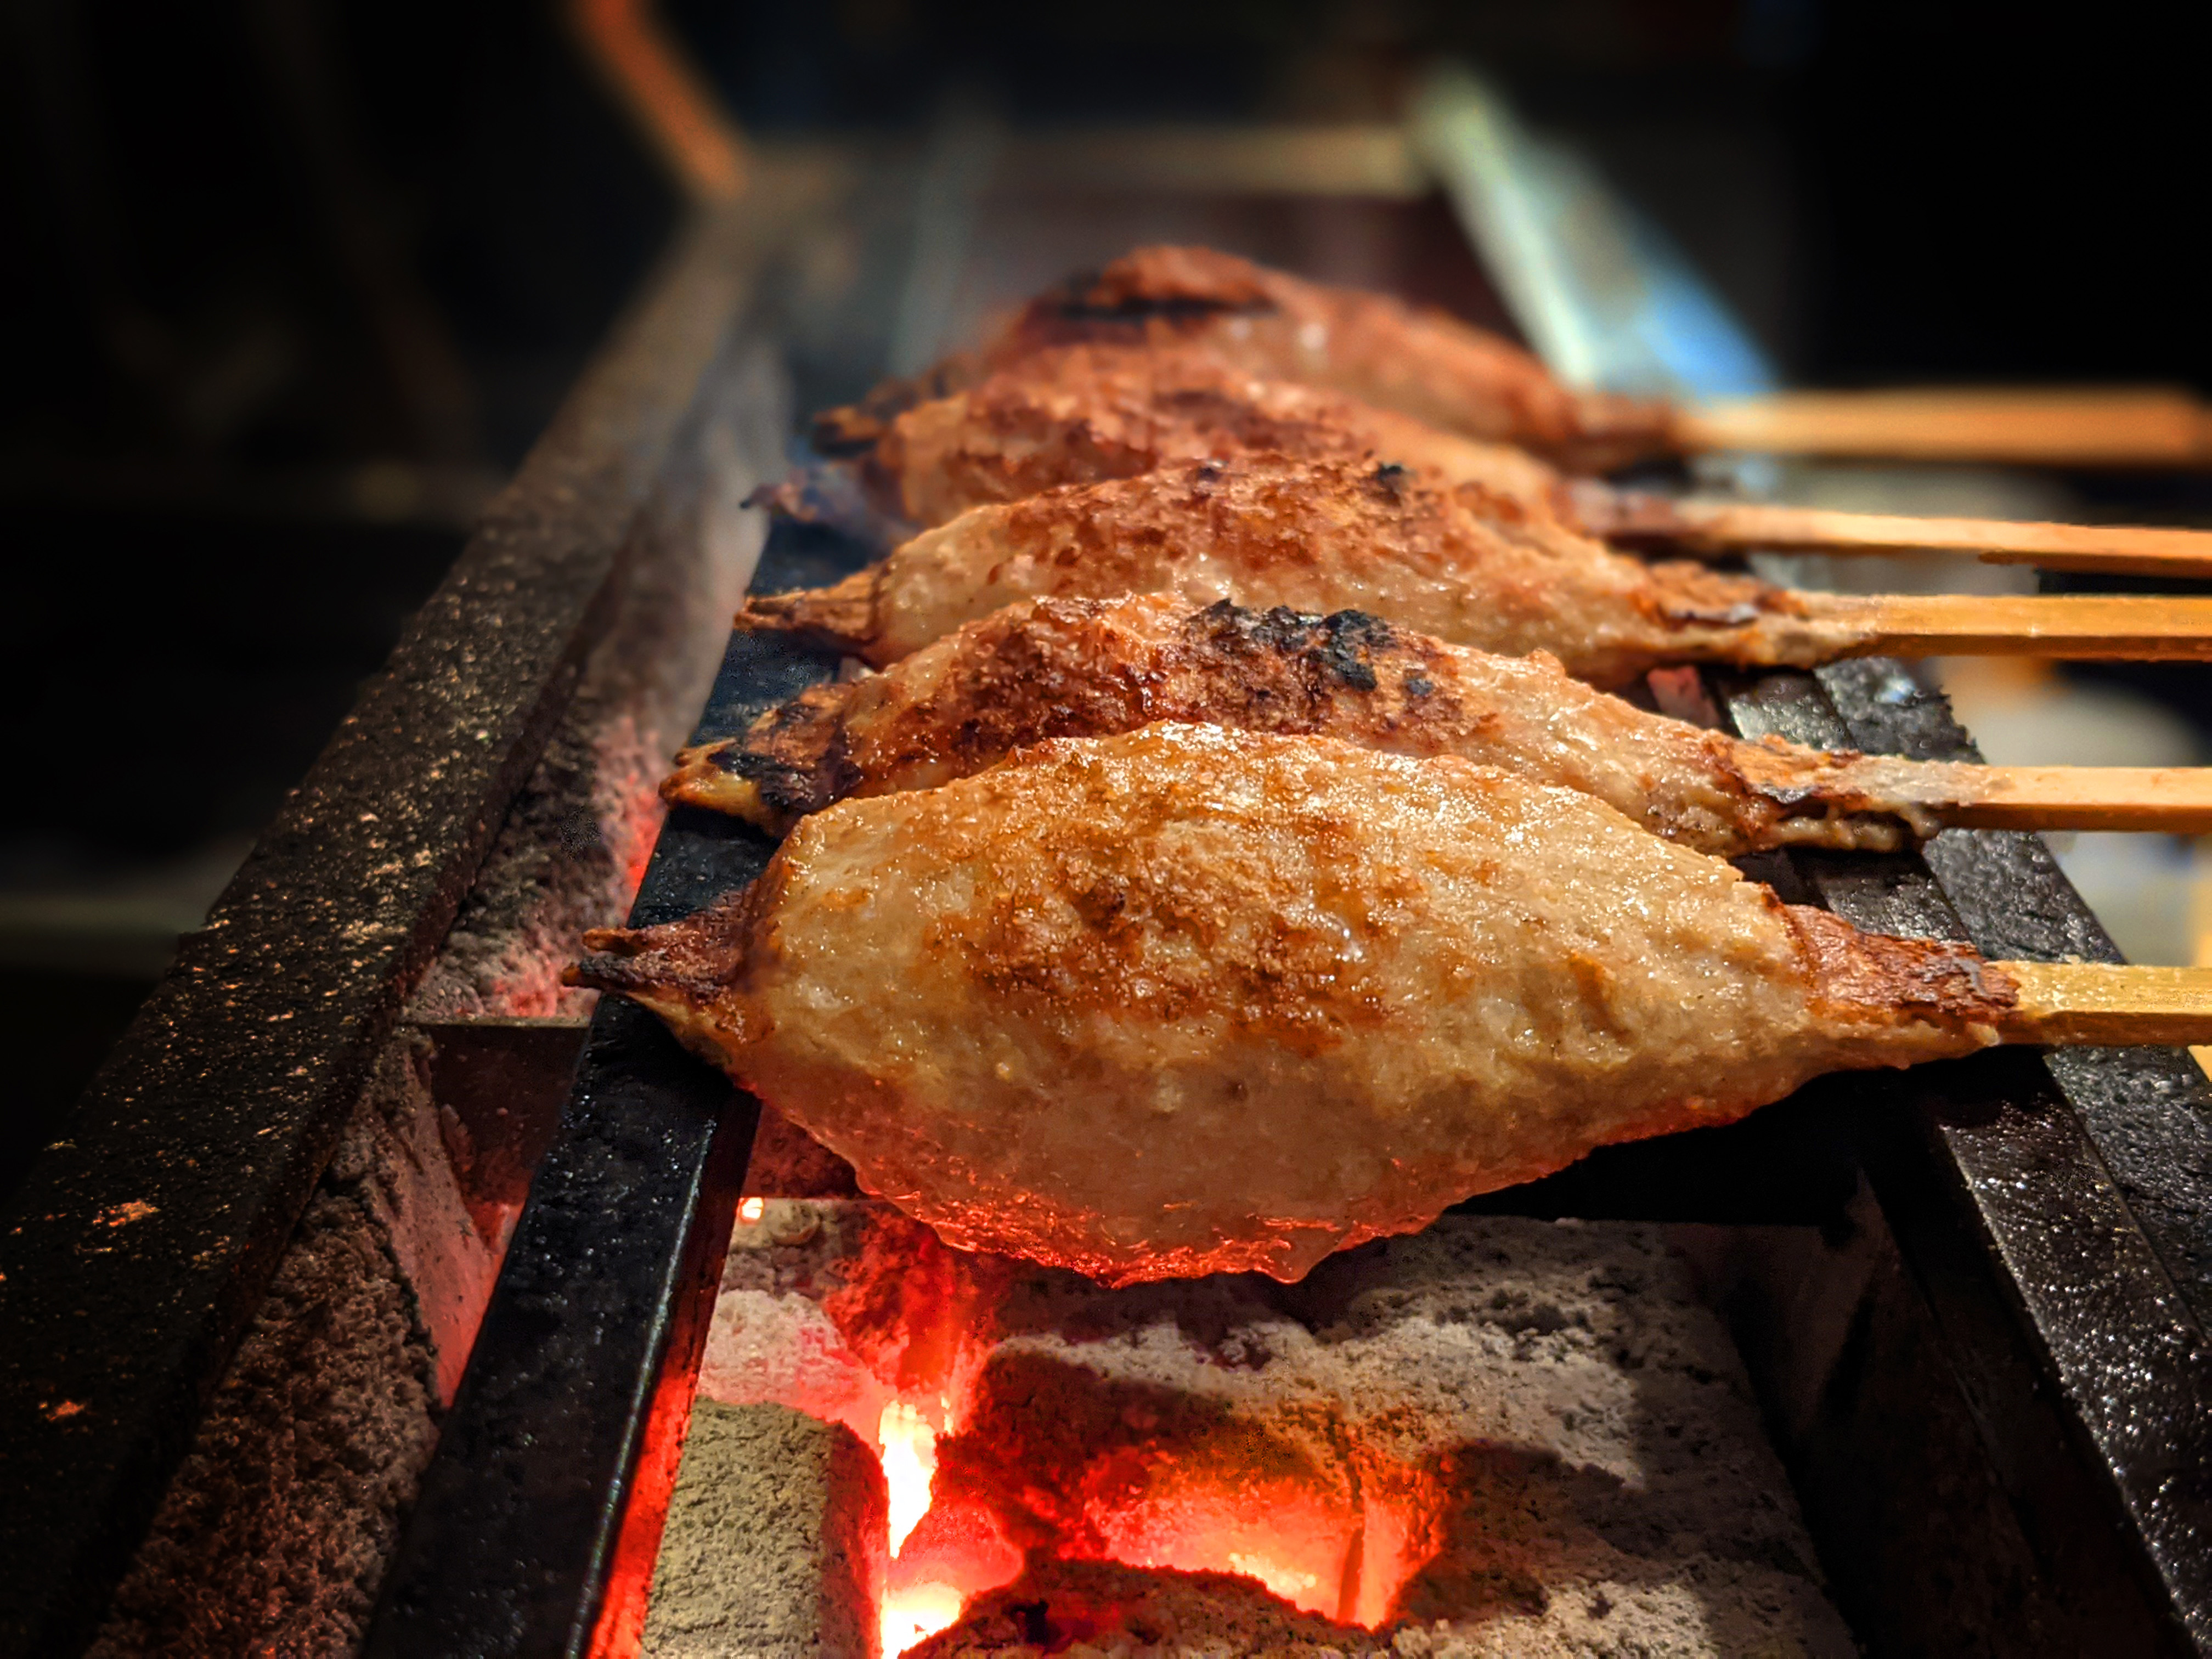 Several meat skewers are lined up over a charcoal grill at Aki Kushiyaki.